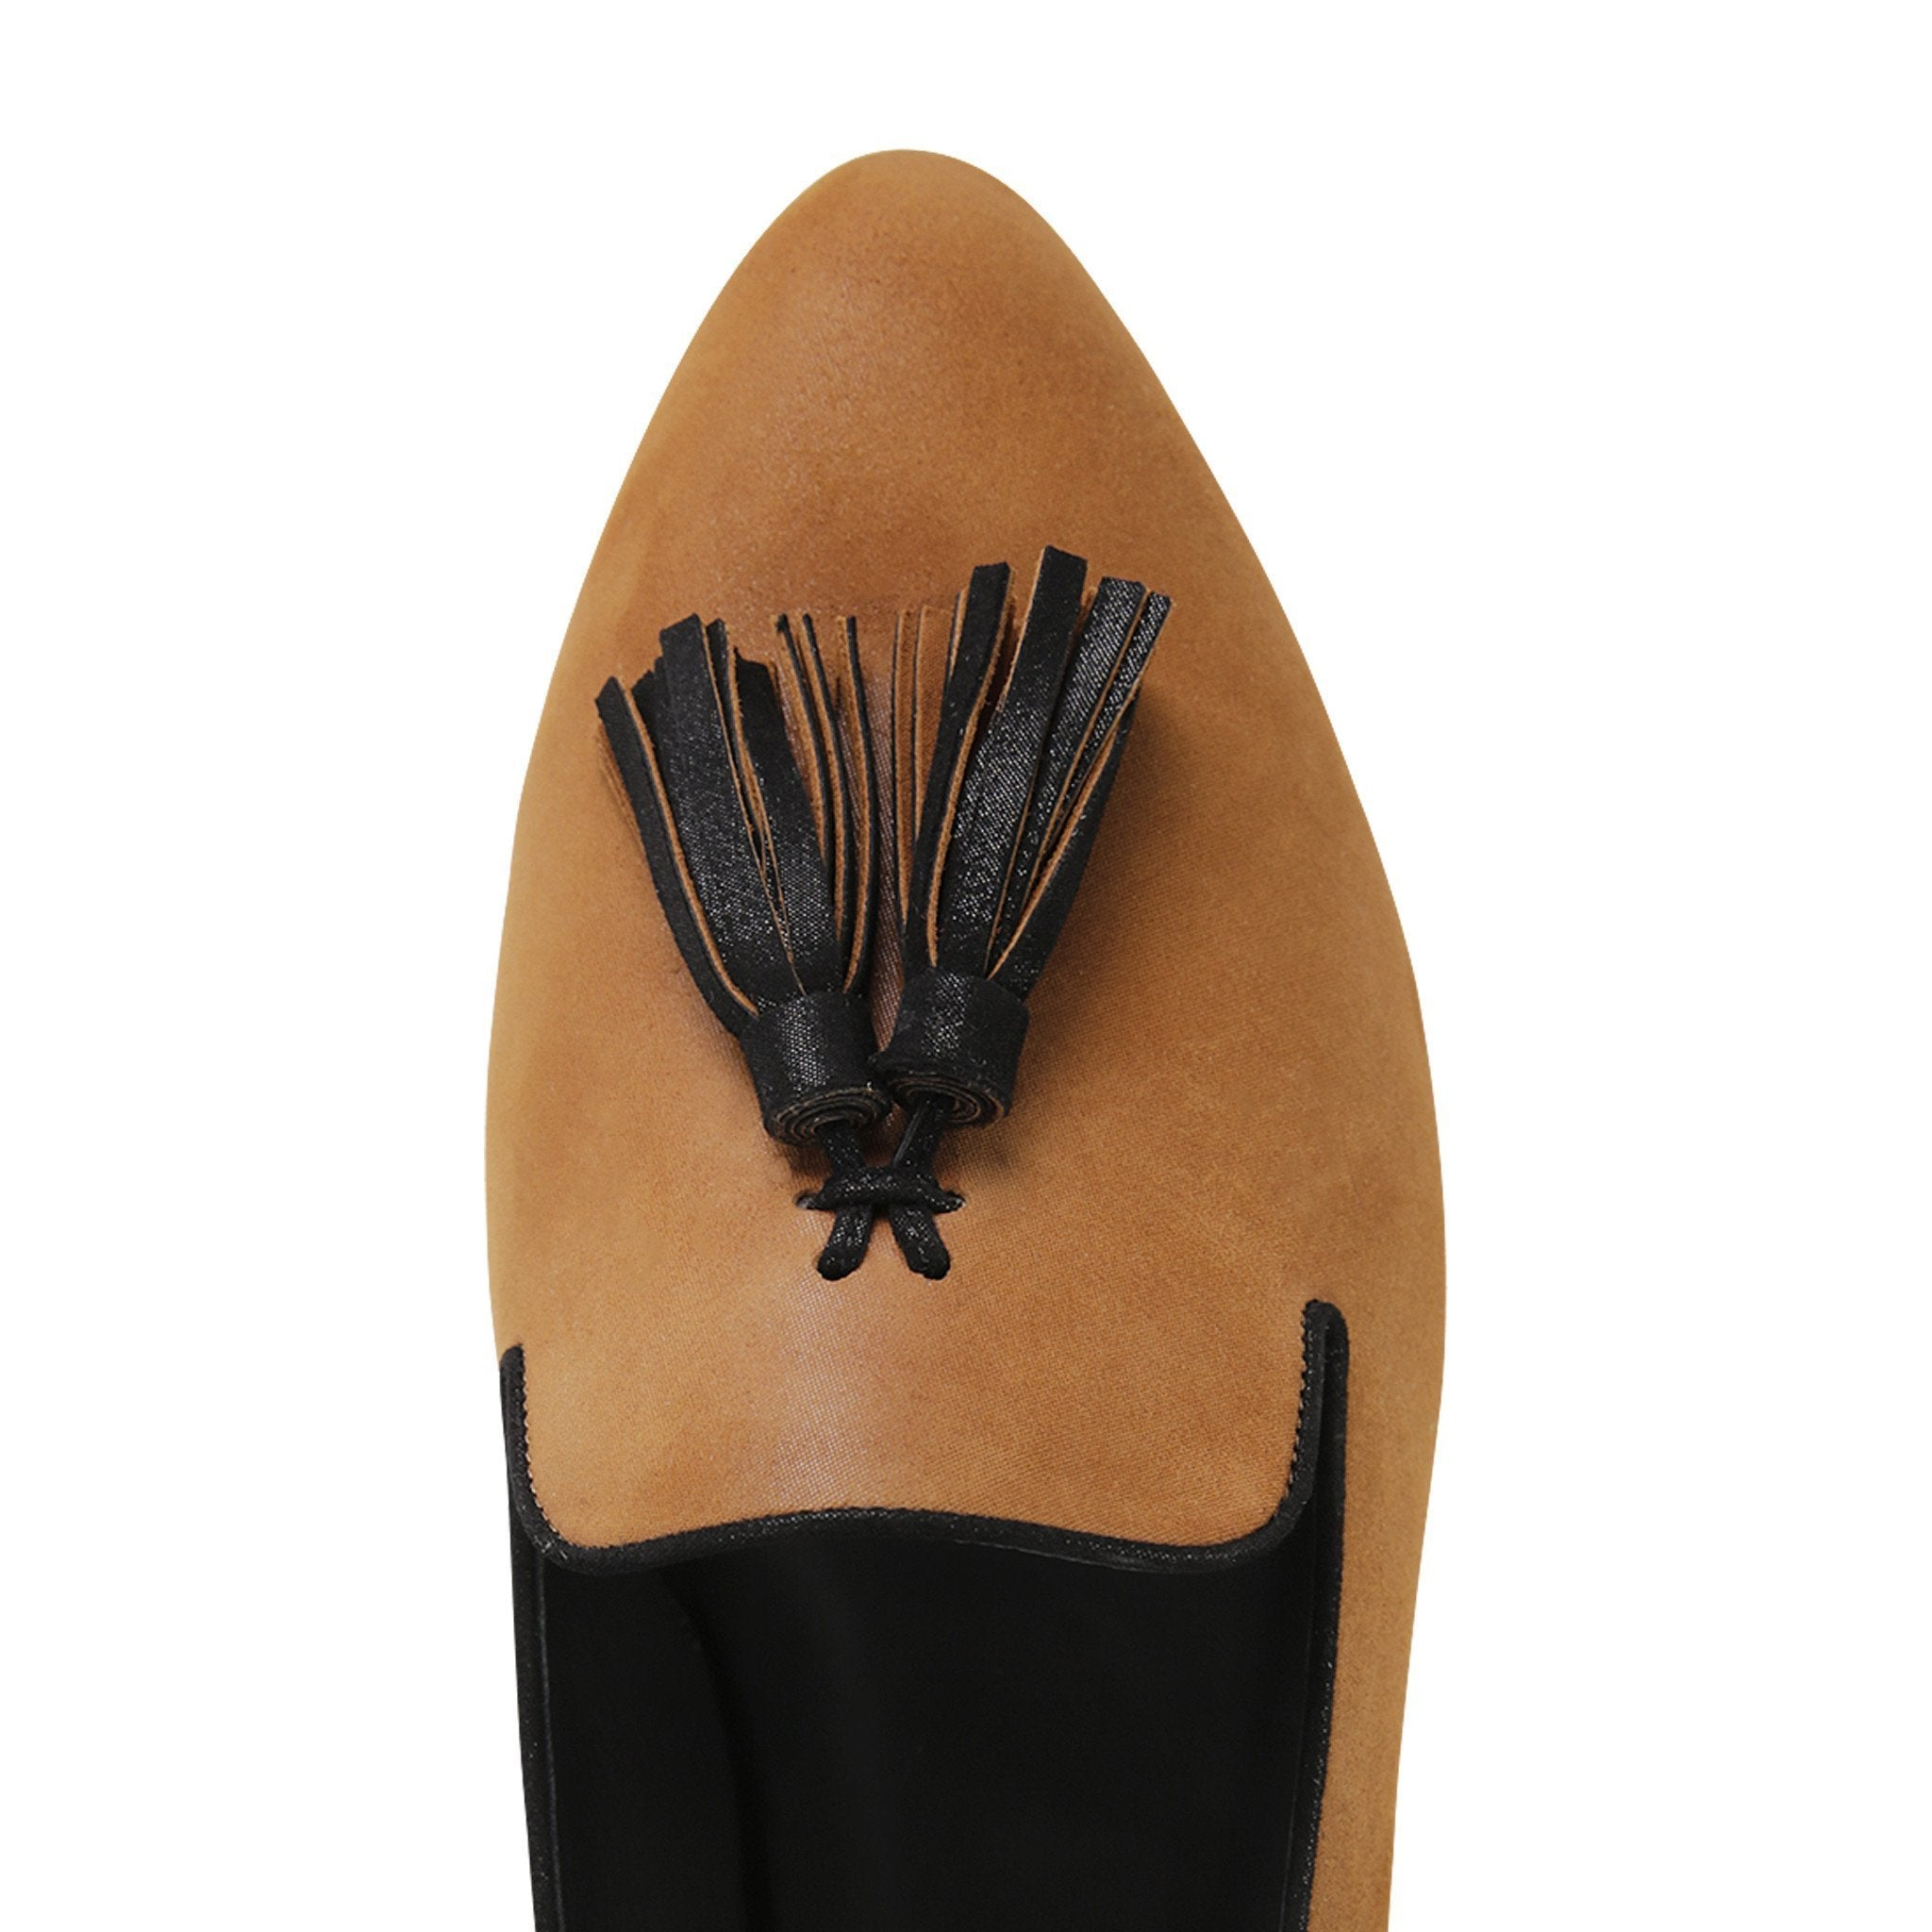 PARMA - Hydra Dune + Nero, VIAJIYU - Women's Hand Made Sustainable Luxury Shoes. Made in Italy. Made to Order.